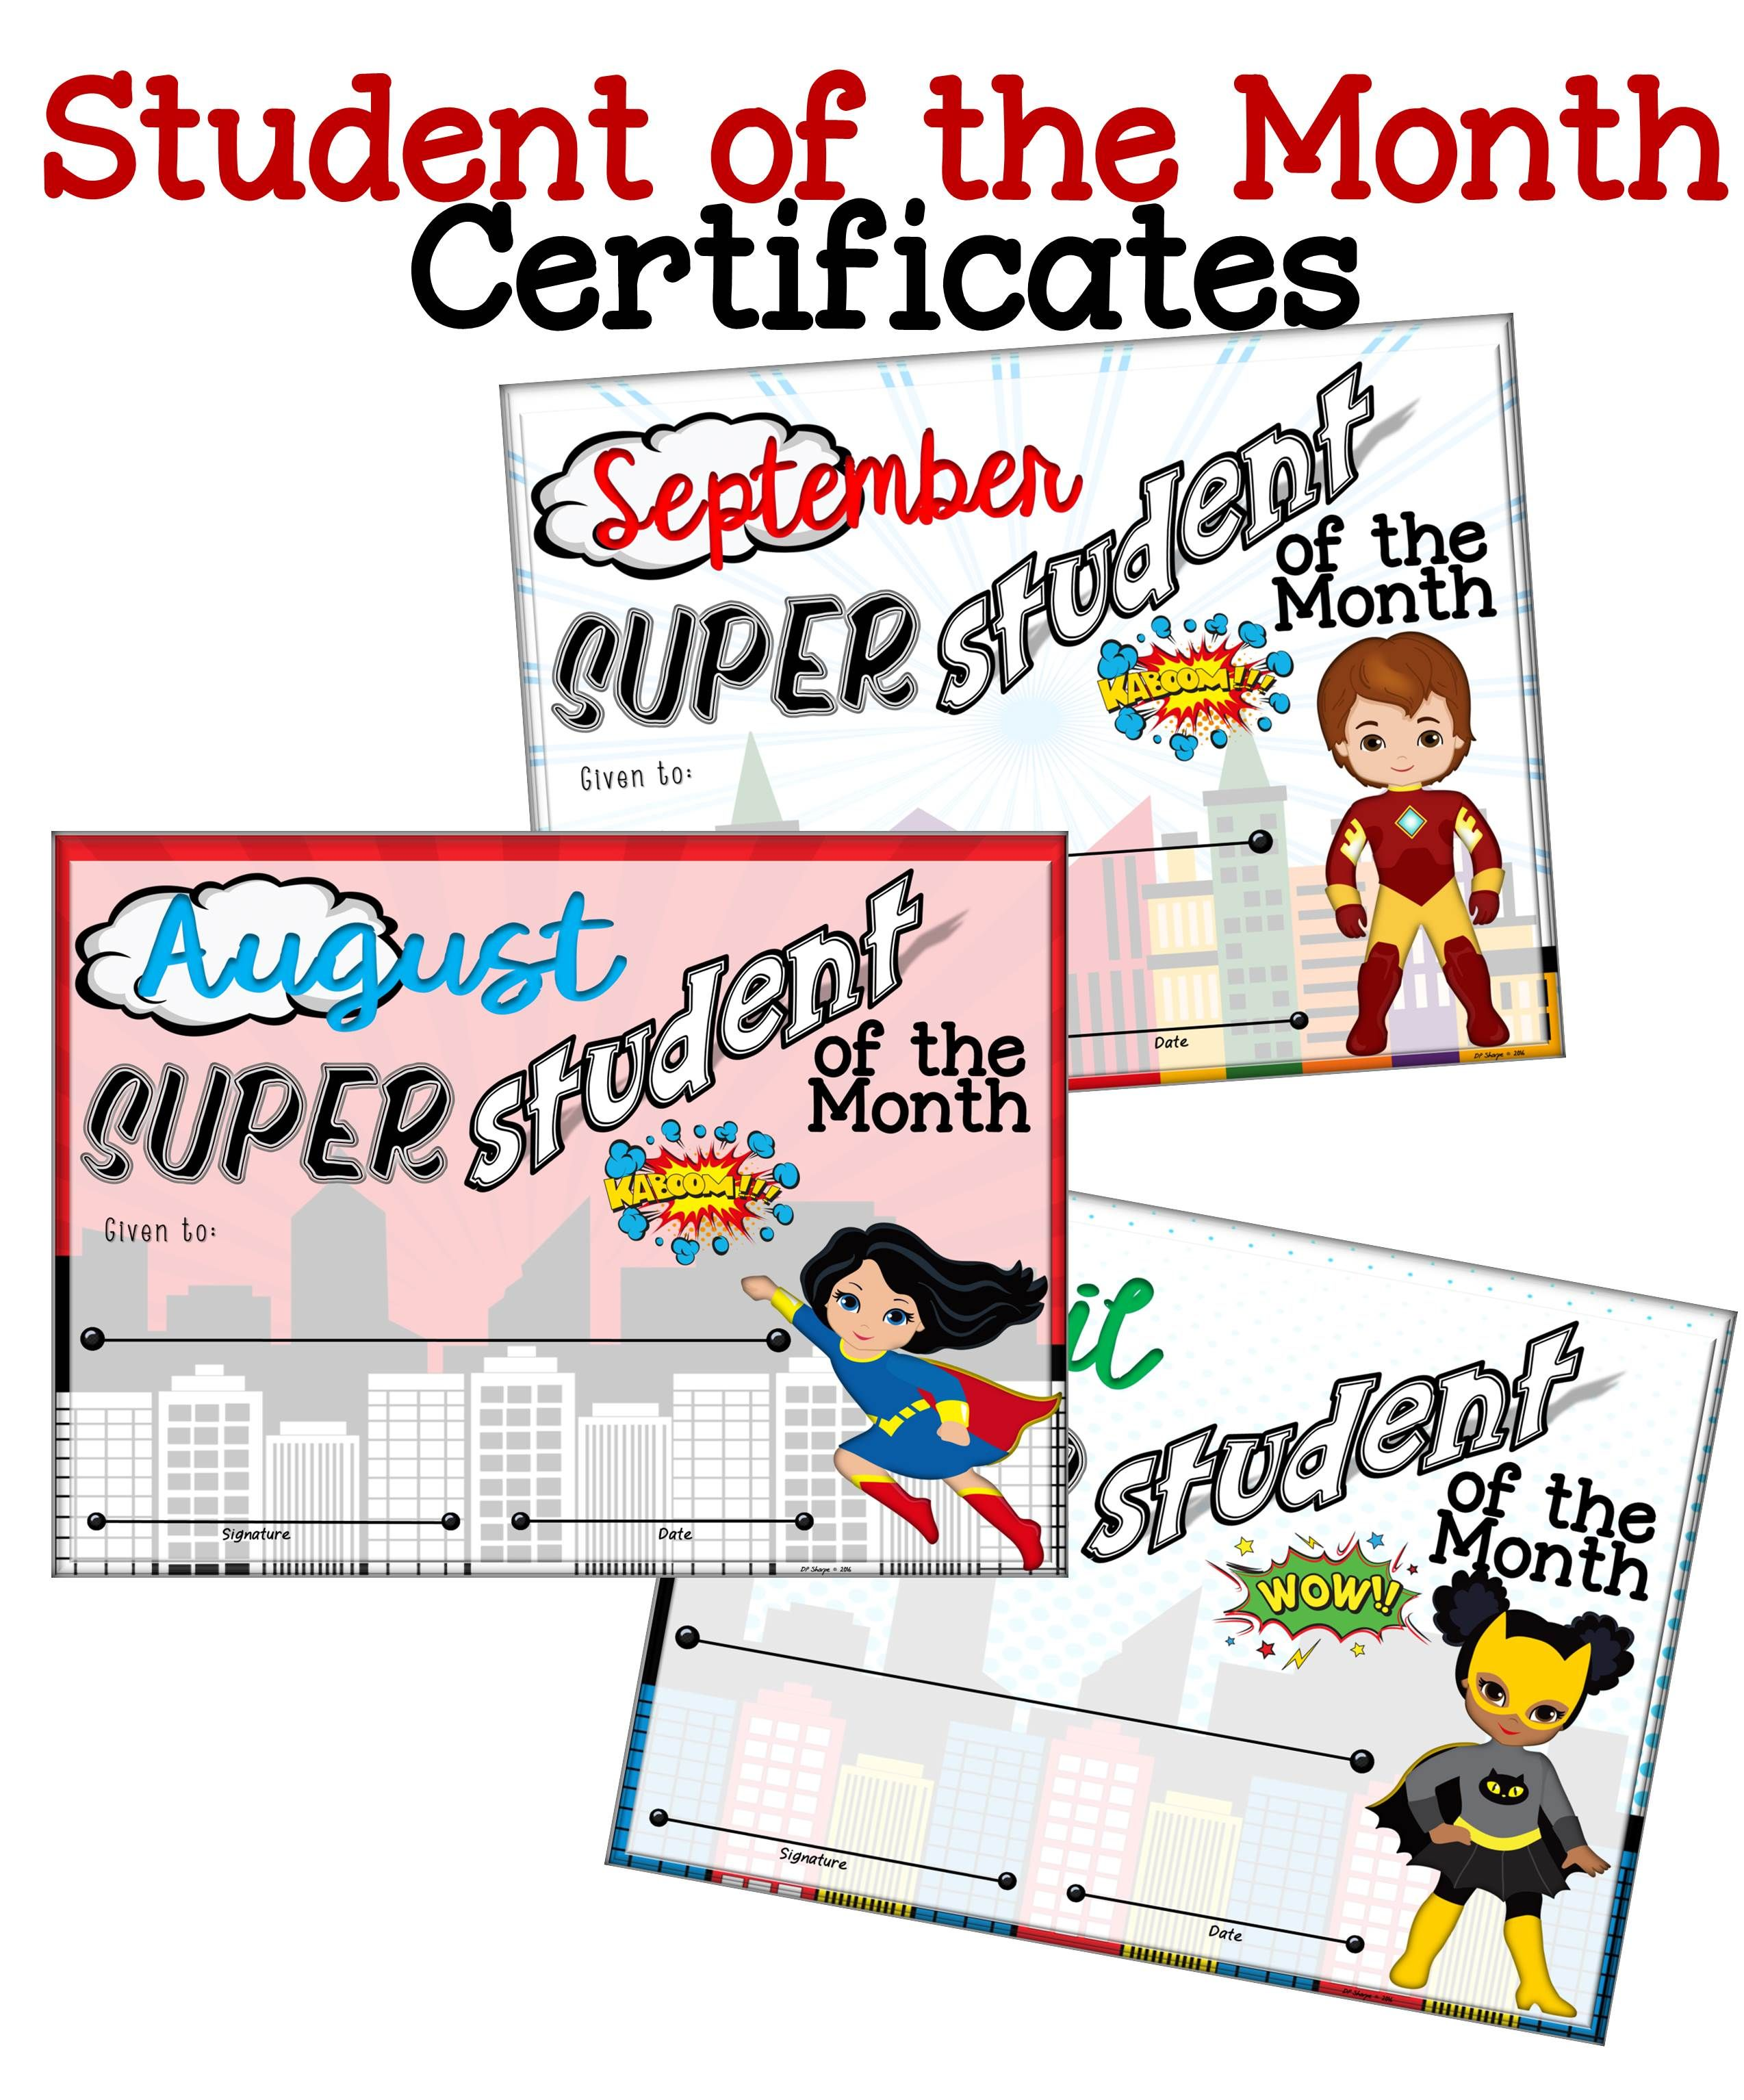 Super student of the month certificates students teaching ideas super student of the month certificates 1betcityfo Image collections